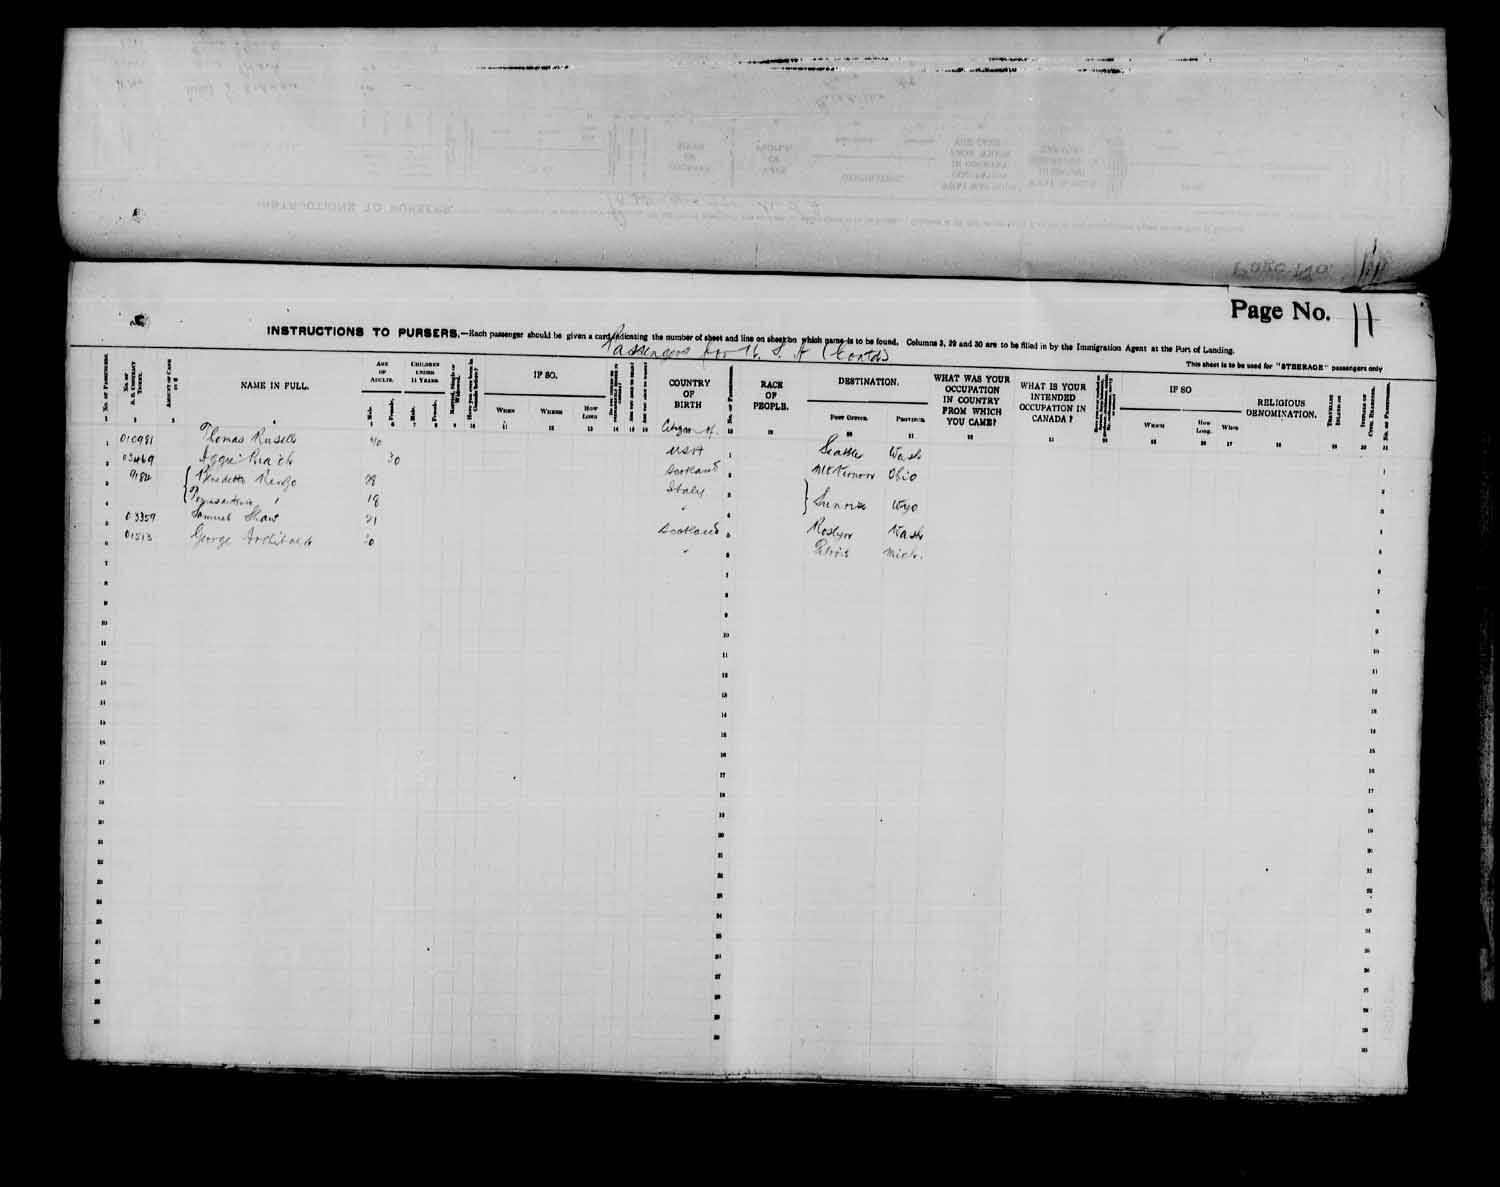 Digitized page of Passenger Lists for Image No.: e003566530